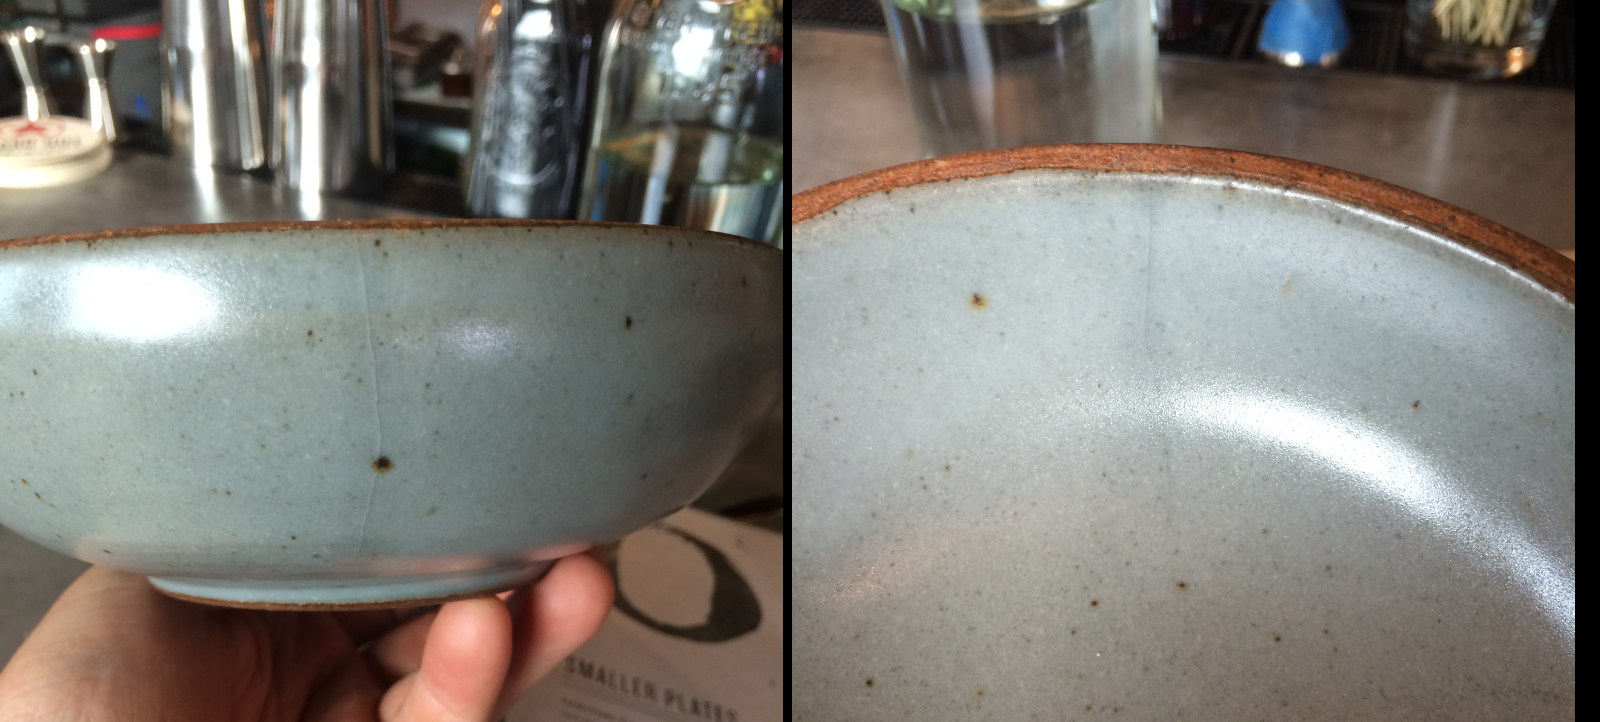 A cone 10 Reduction bowl has cracked after continuous use